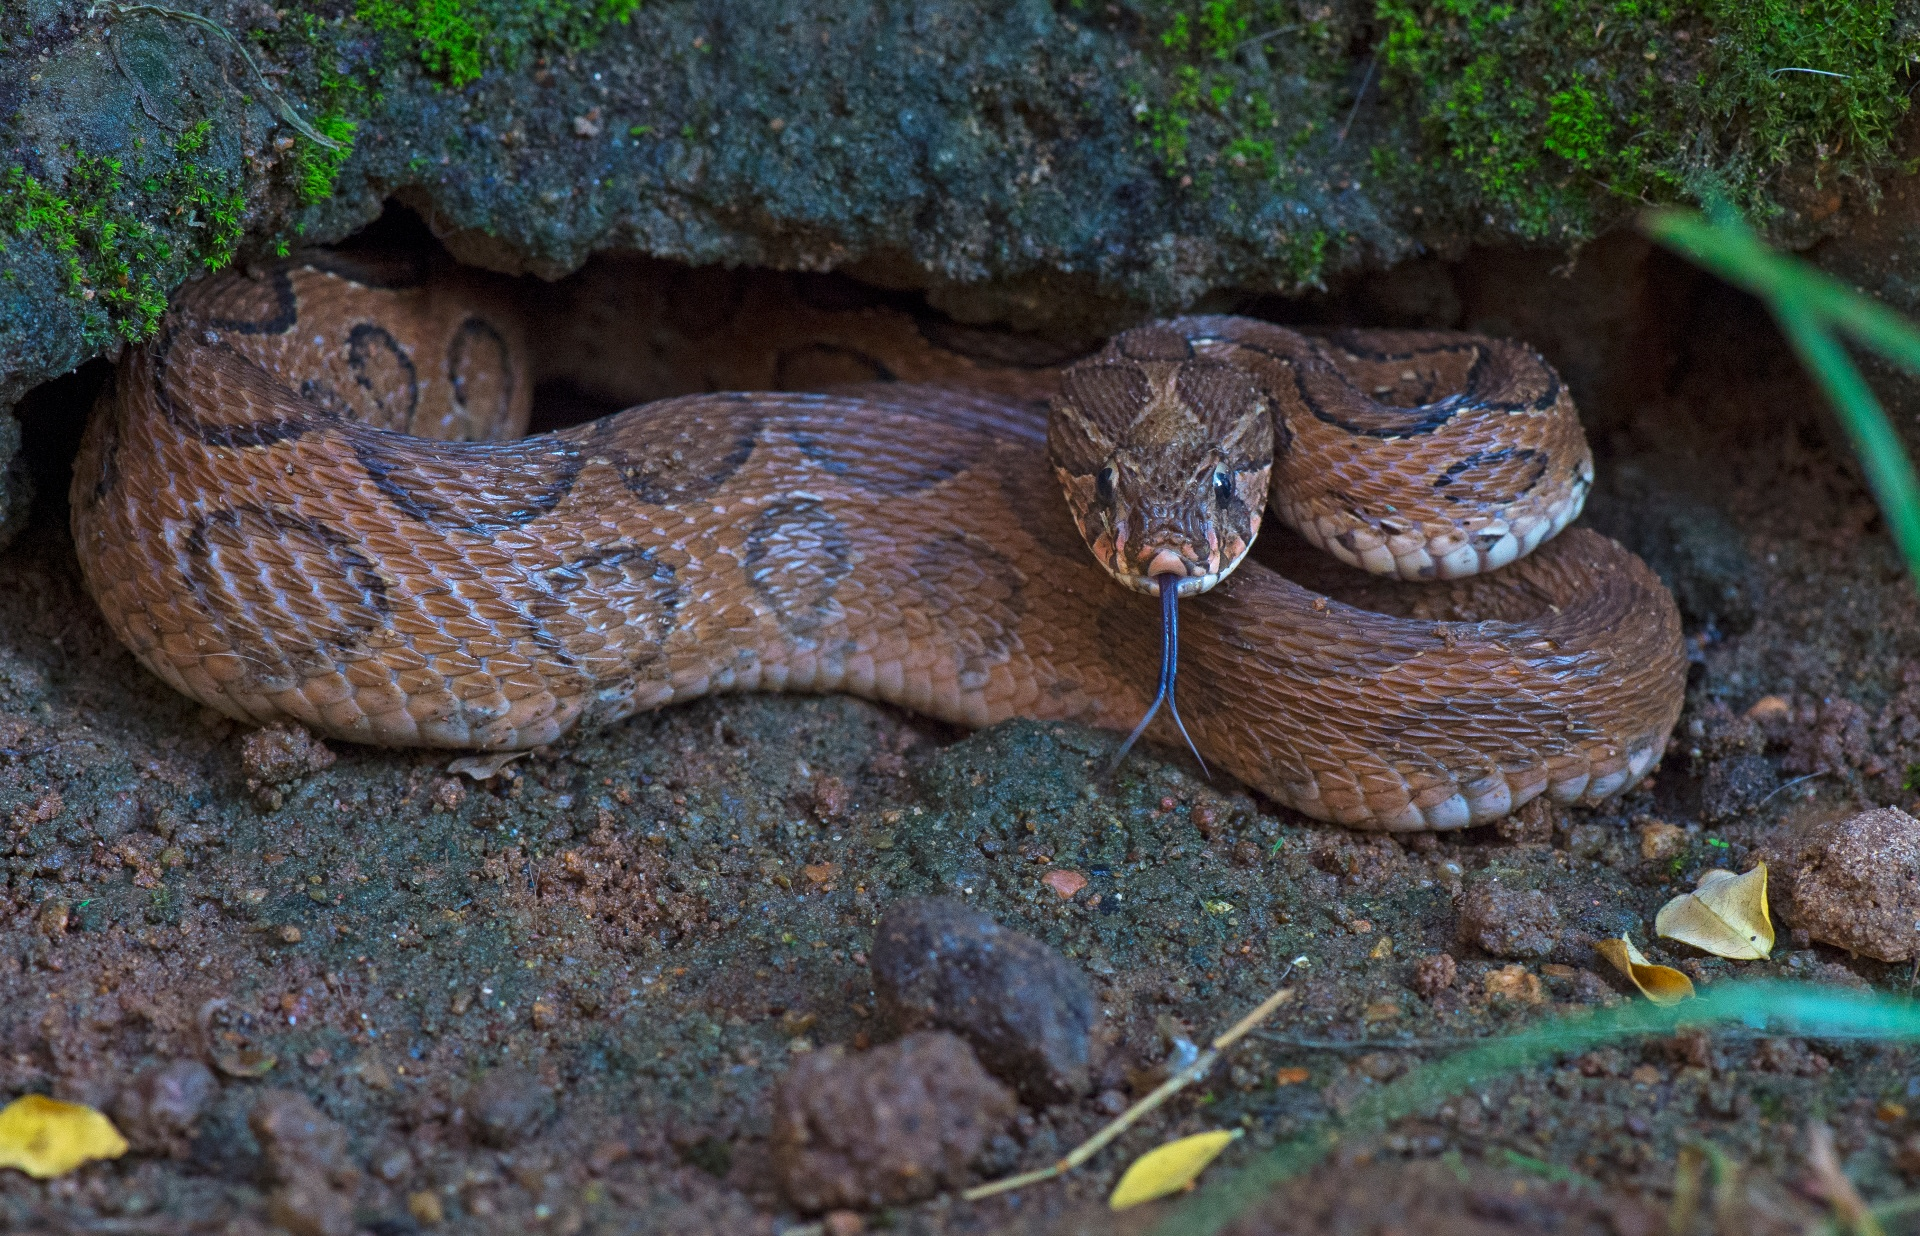 More commonly seen in the plains, the Russell's viper is known to be a temperamental snake, prone to aggression when cornered. With a stout body with oval black-and-brown markings, it is somewhat similar to the Indian rock python, with which it is sometimes confused. Photo: Dhritiman Mukherjee